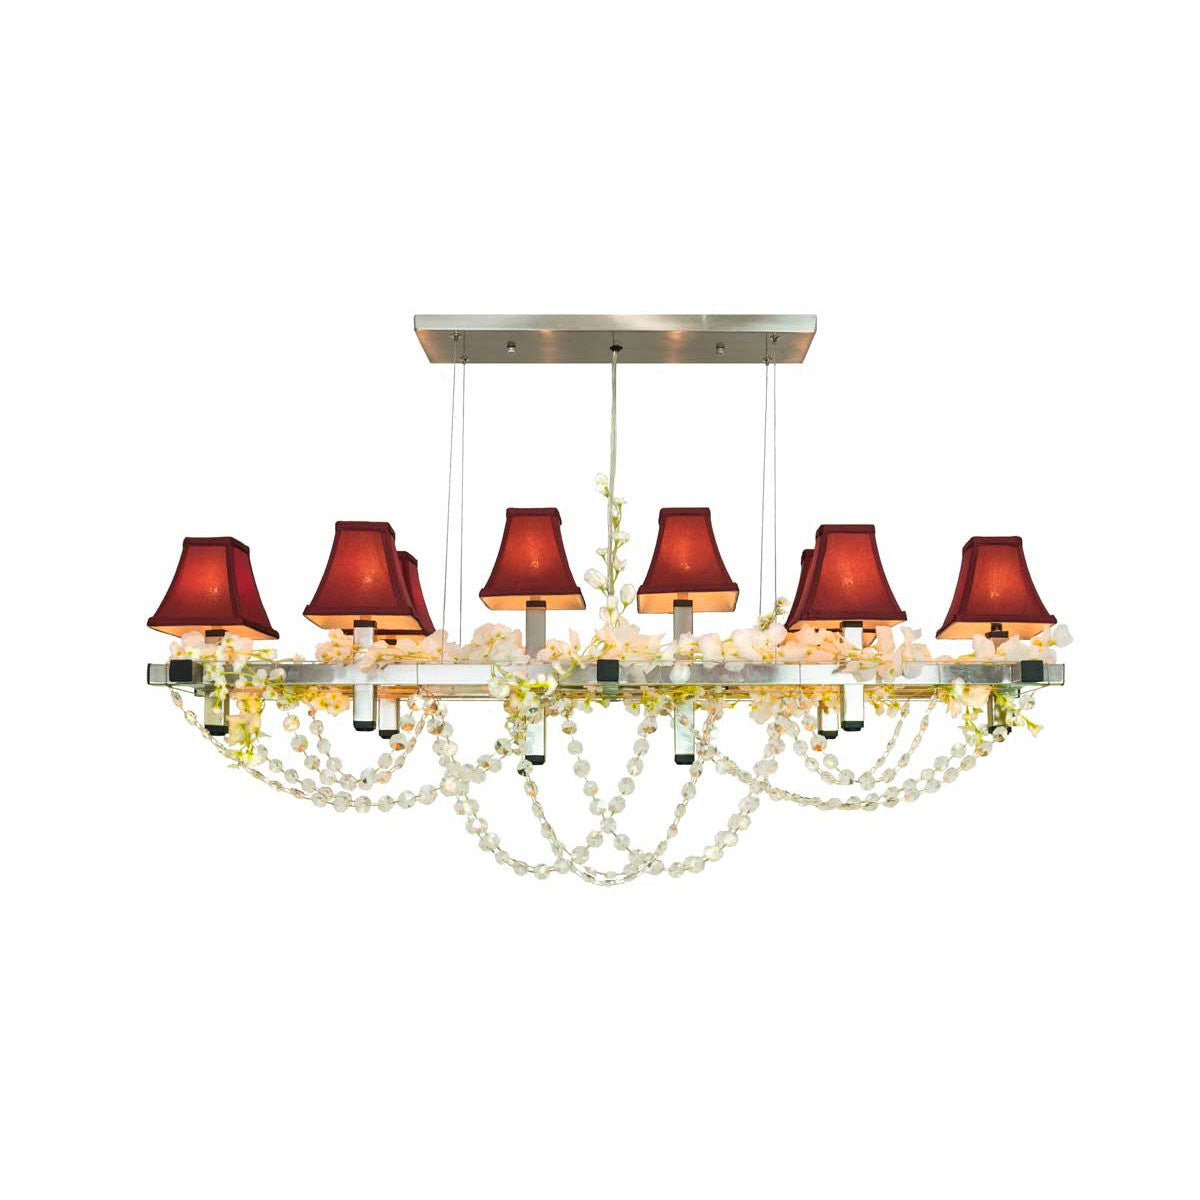 Matrix Plaza Linear Suspension Chandelier